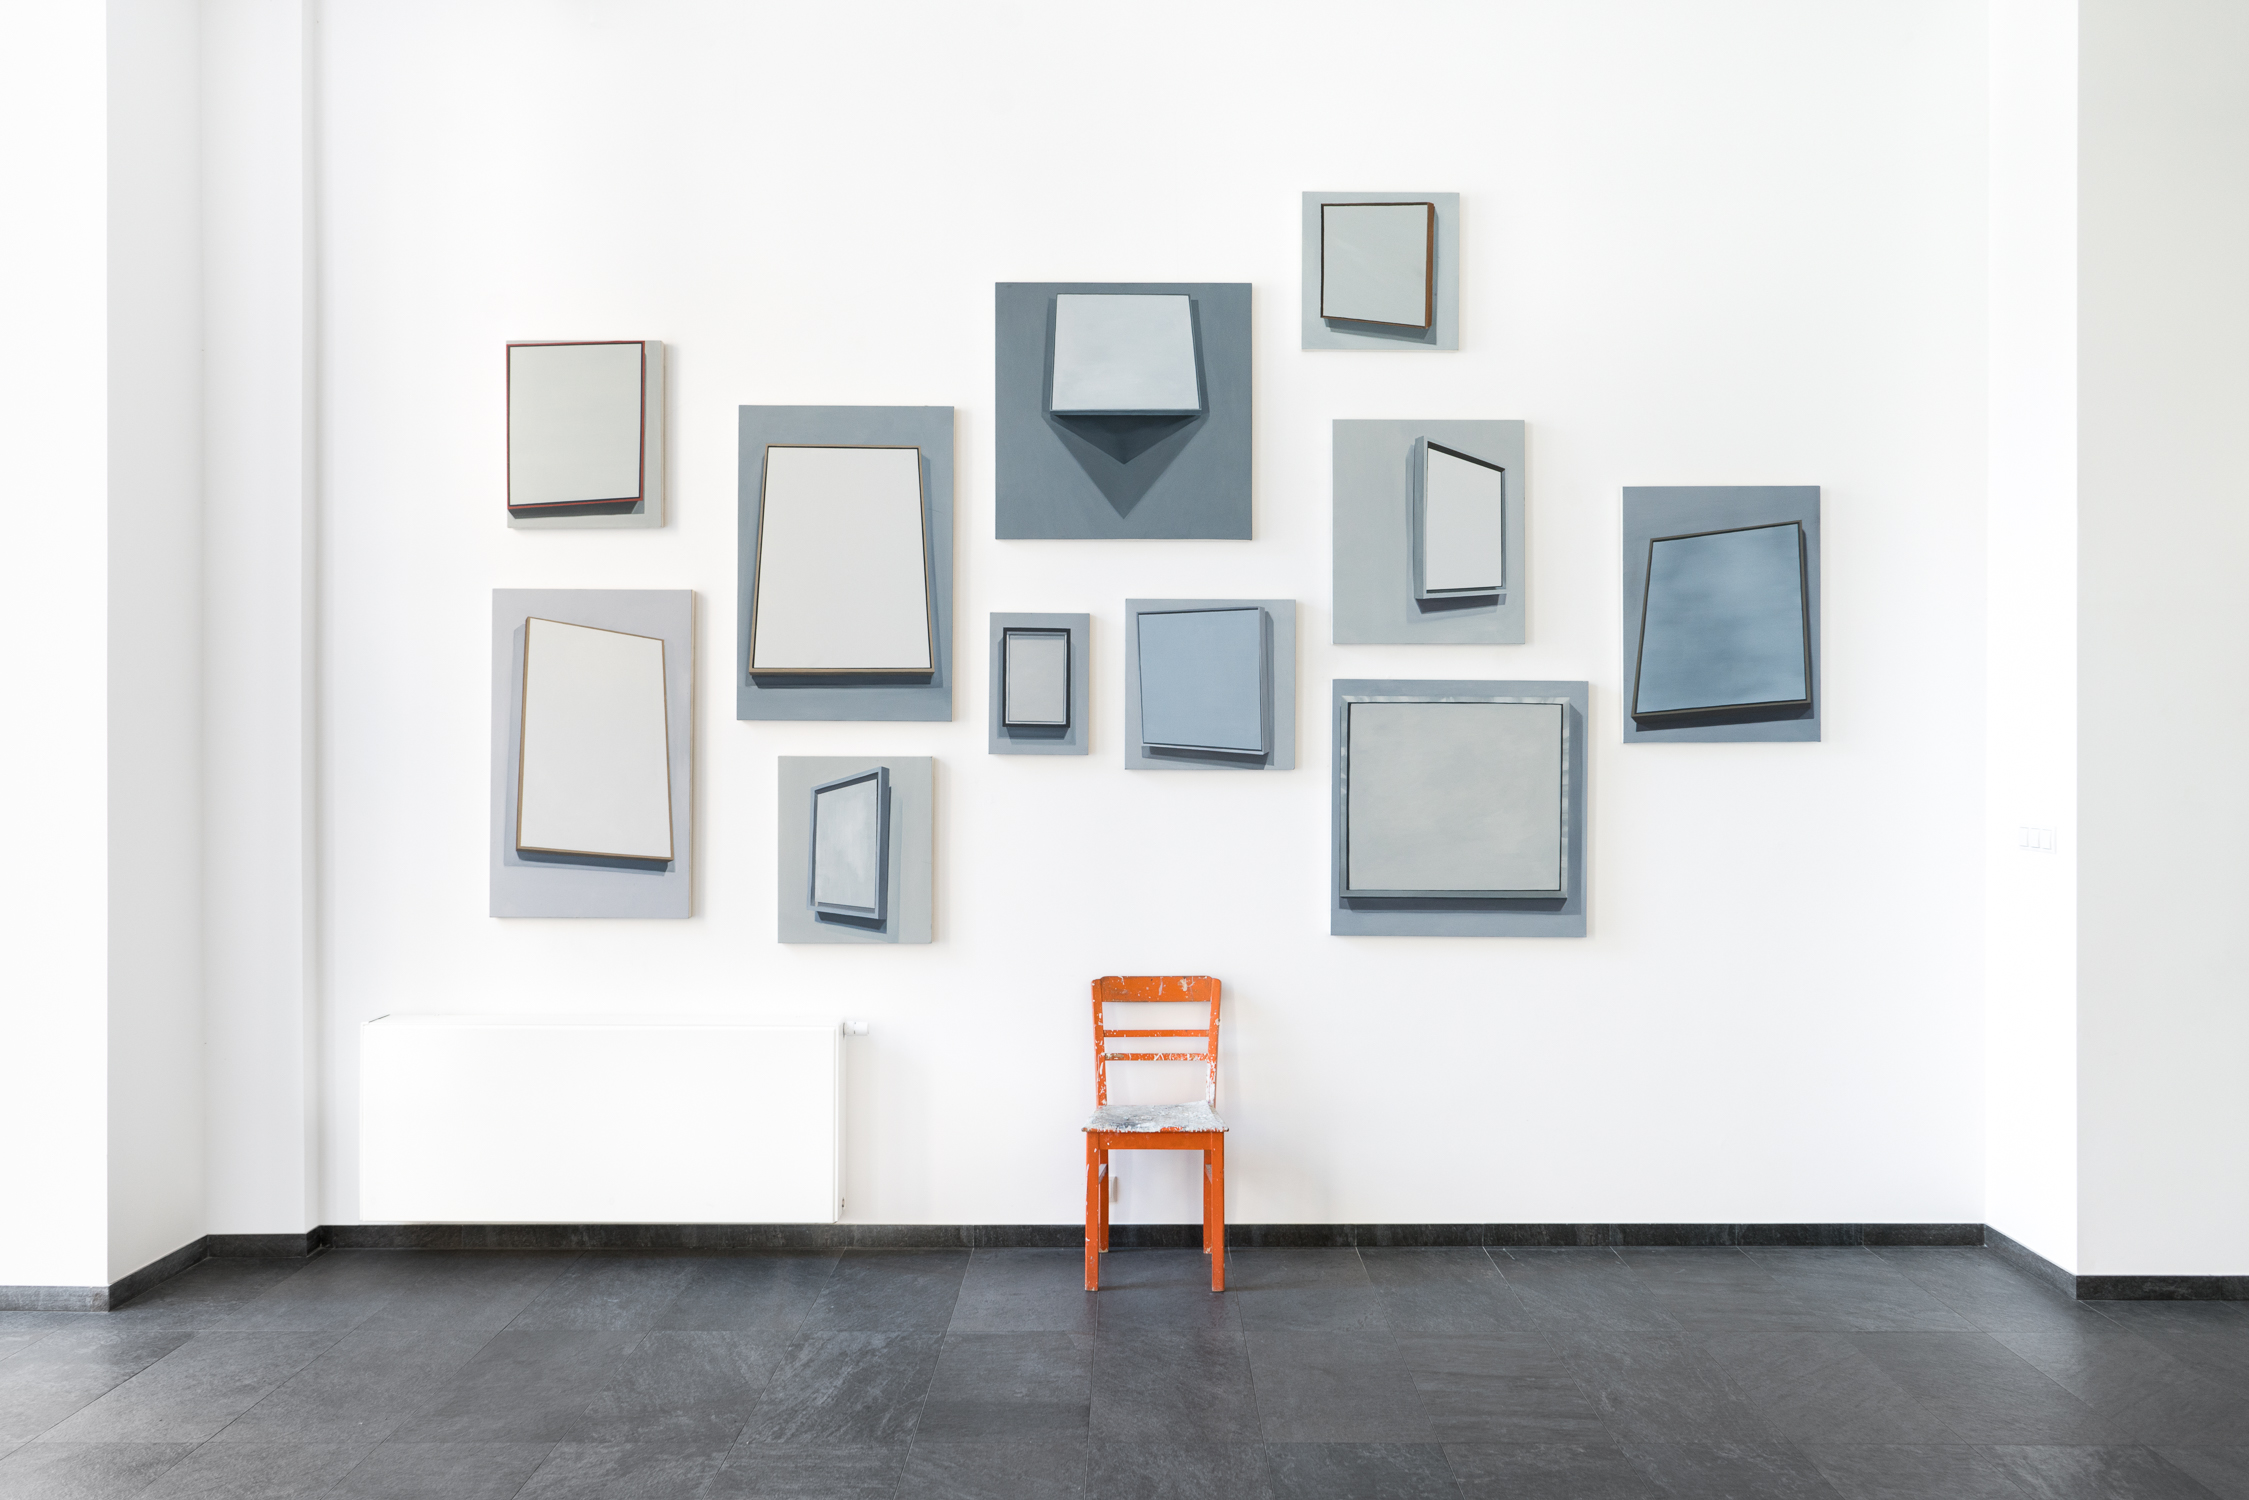 Victory over the Sun, installation view, Assembly Gallery, Poznan, PO. 2018